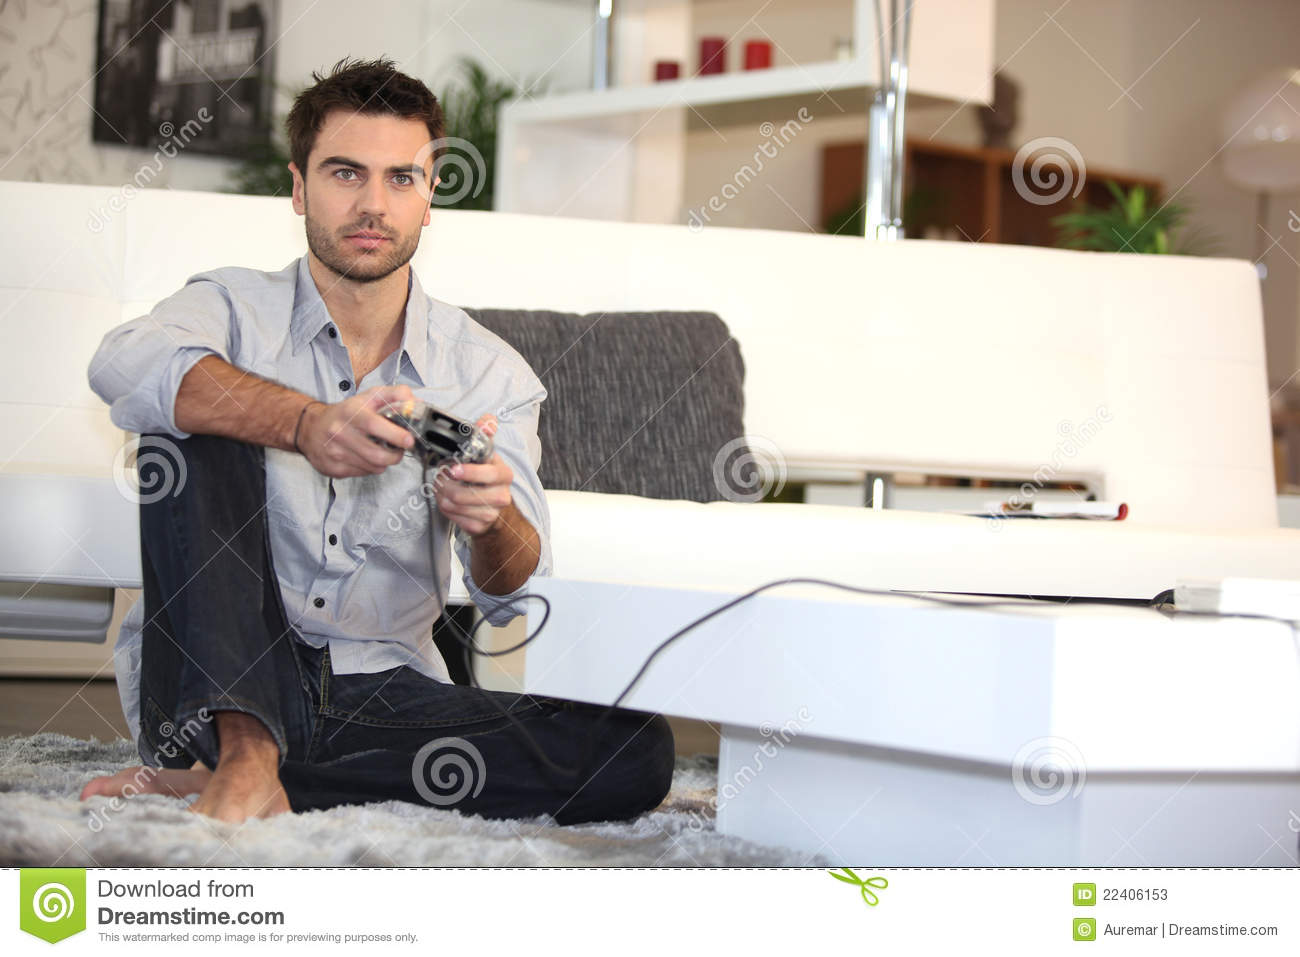 Home Recording Studio Design Book Man Playing Video Games Alone Stock Photos Image 22406153